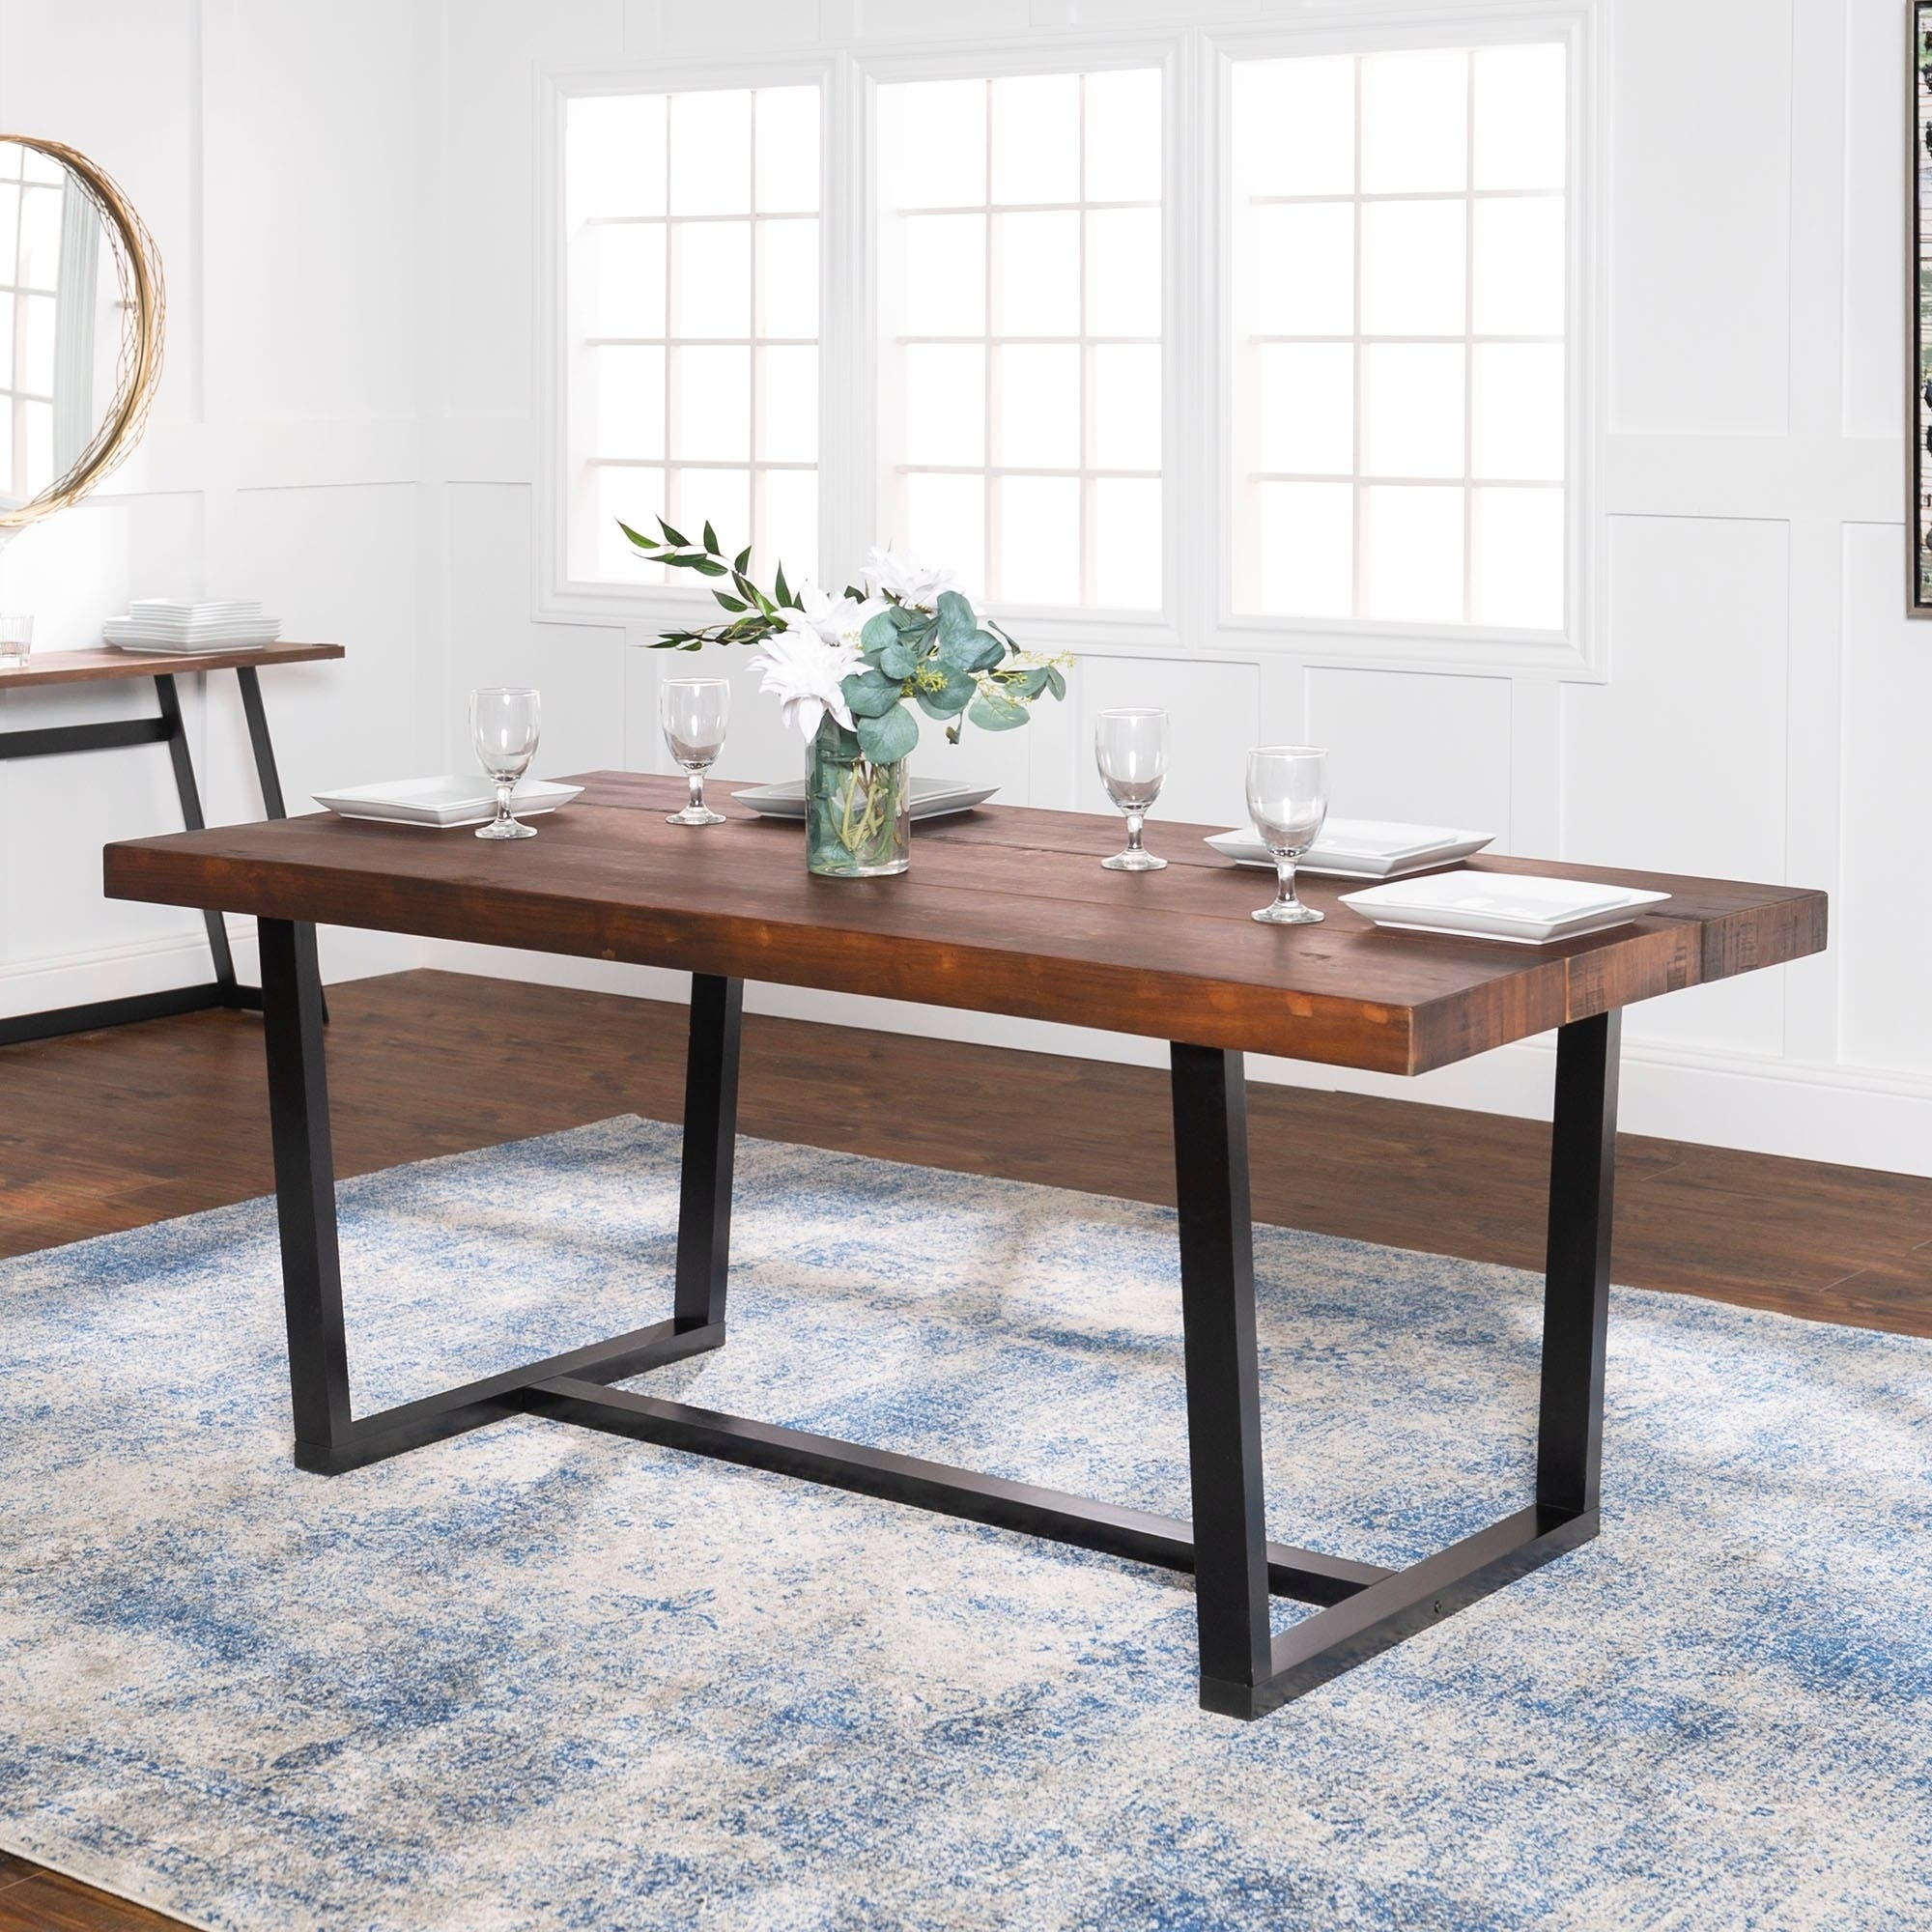 Buy Dining Room Furniture Online: Buy Kitchen & Dining Room Tables Online At Overstock.com